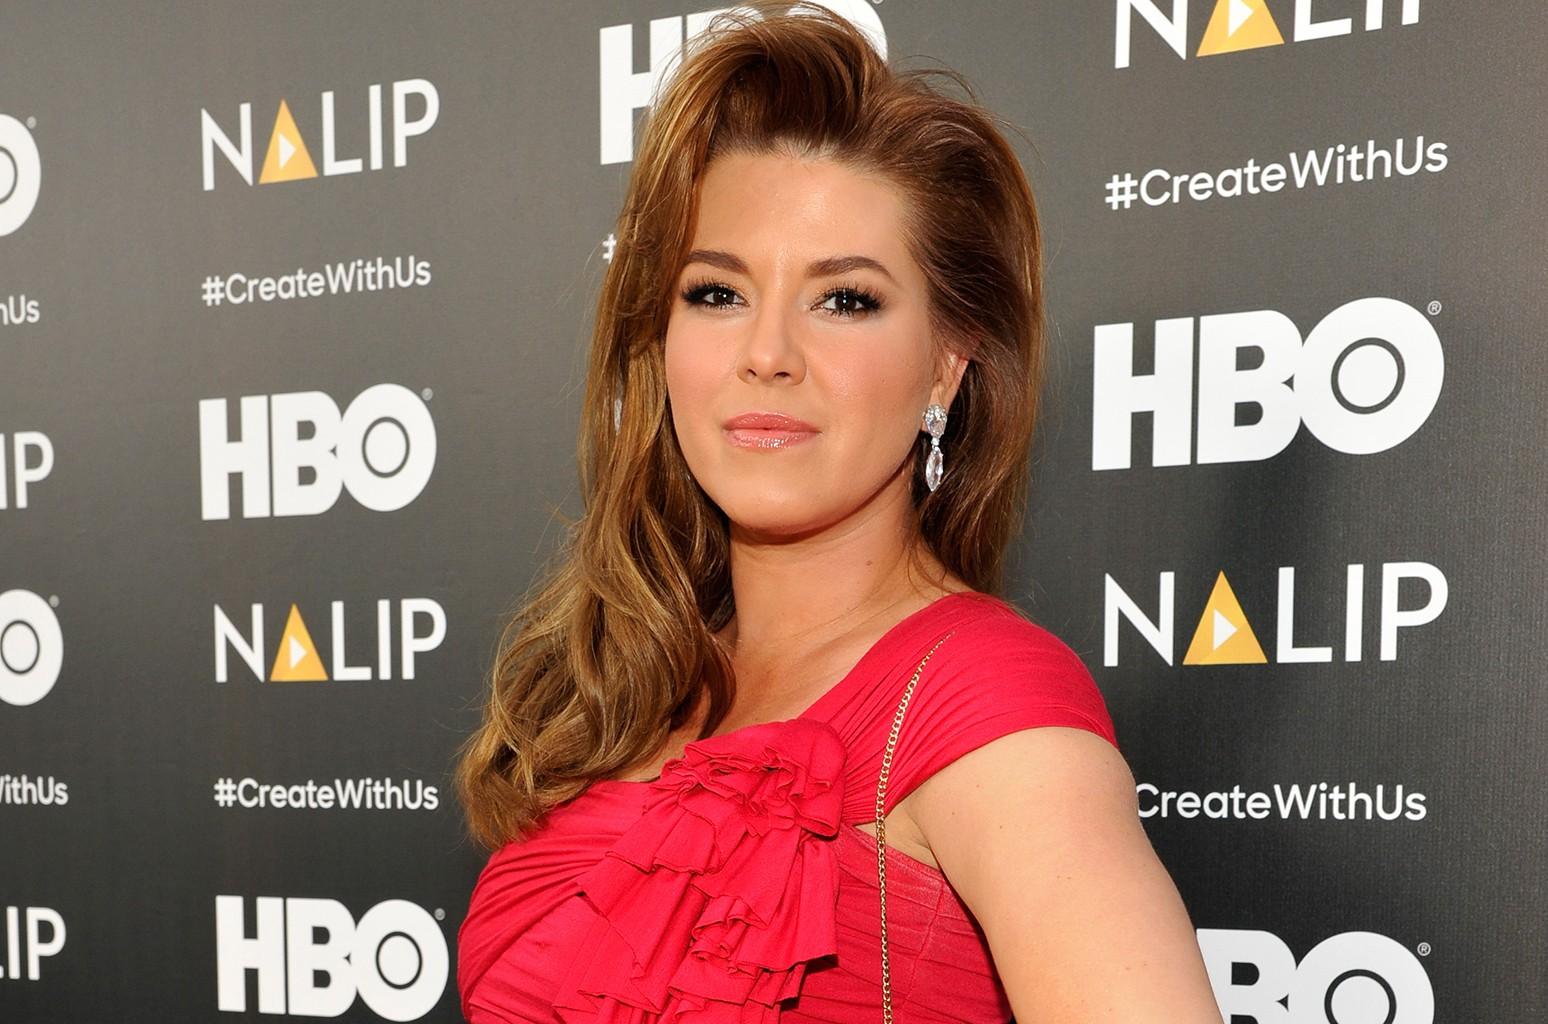 Alicia Machado in 2016